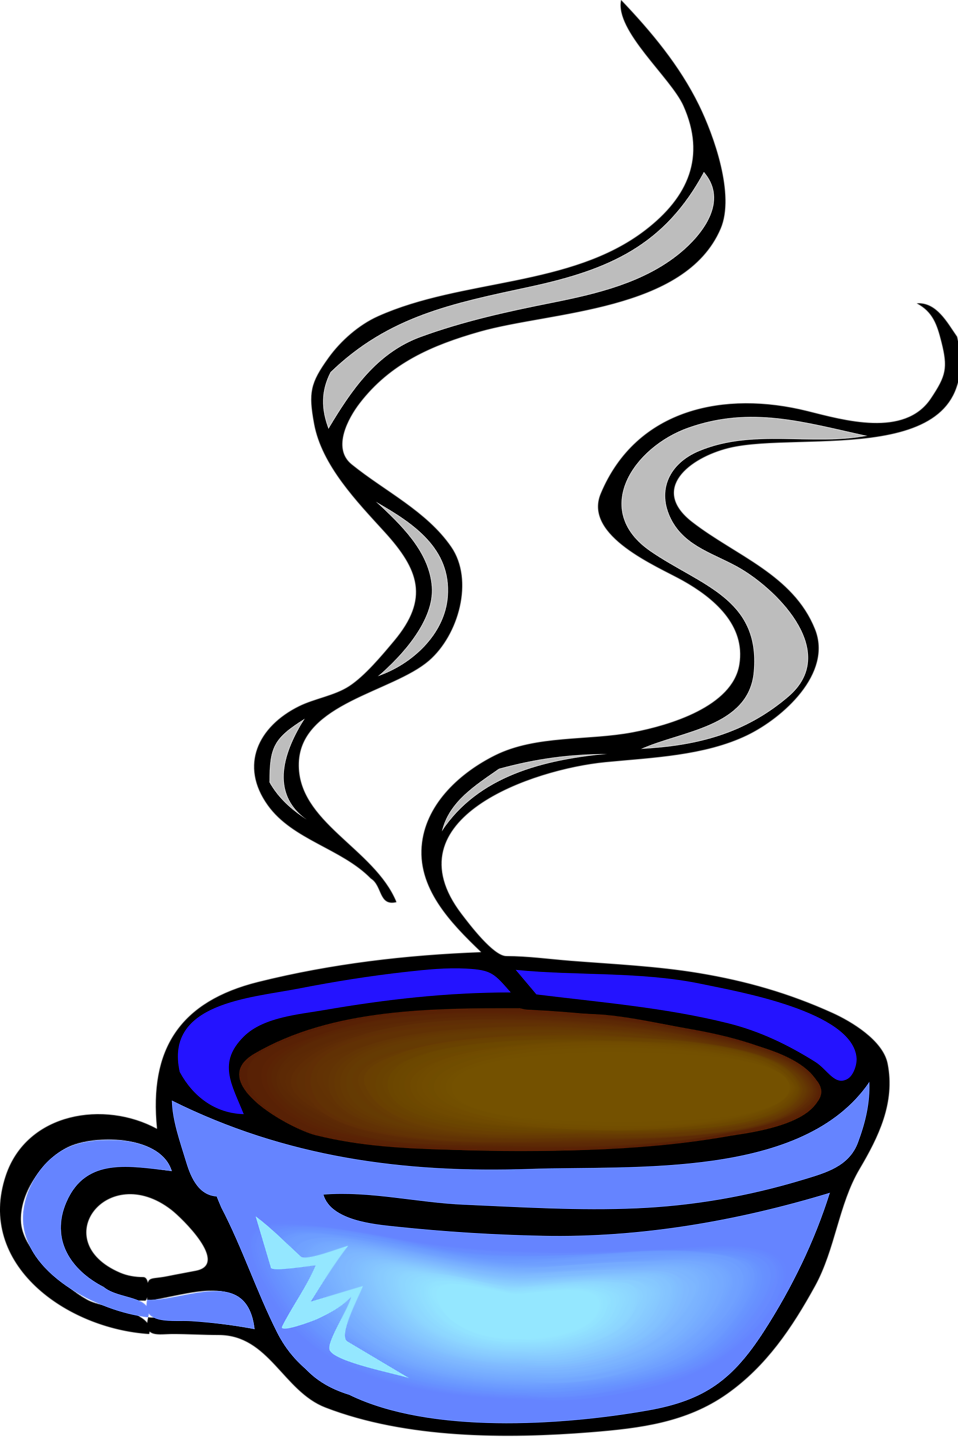 banner royalty free library Stock photo illustration of. Free coffee cup clipart